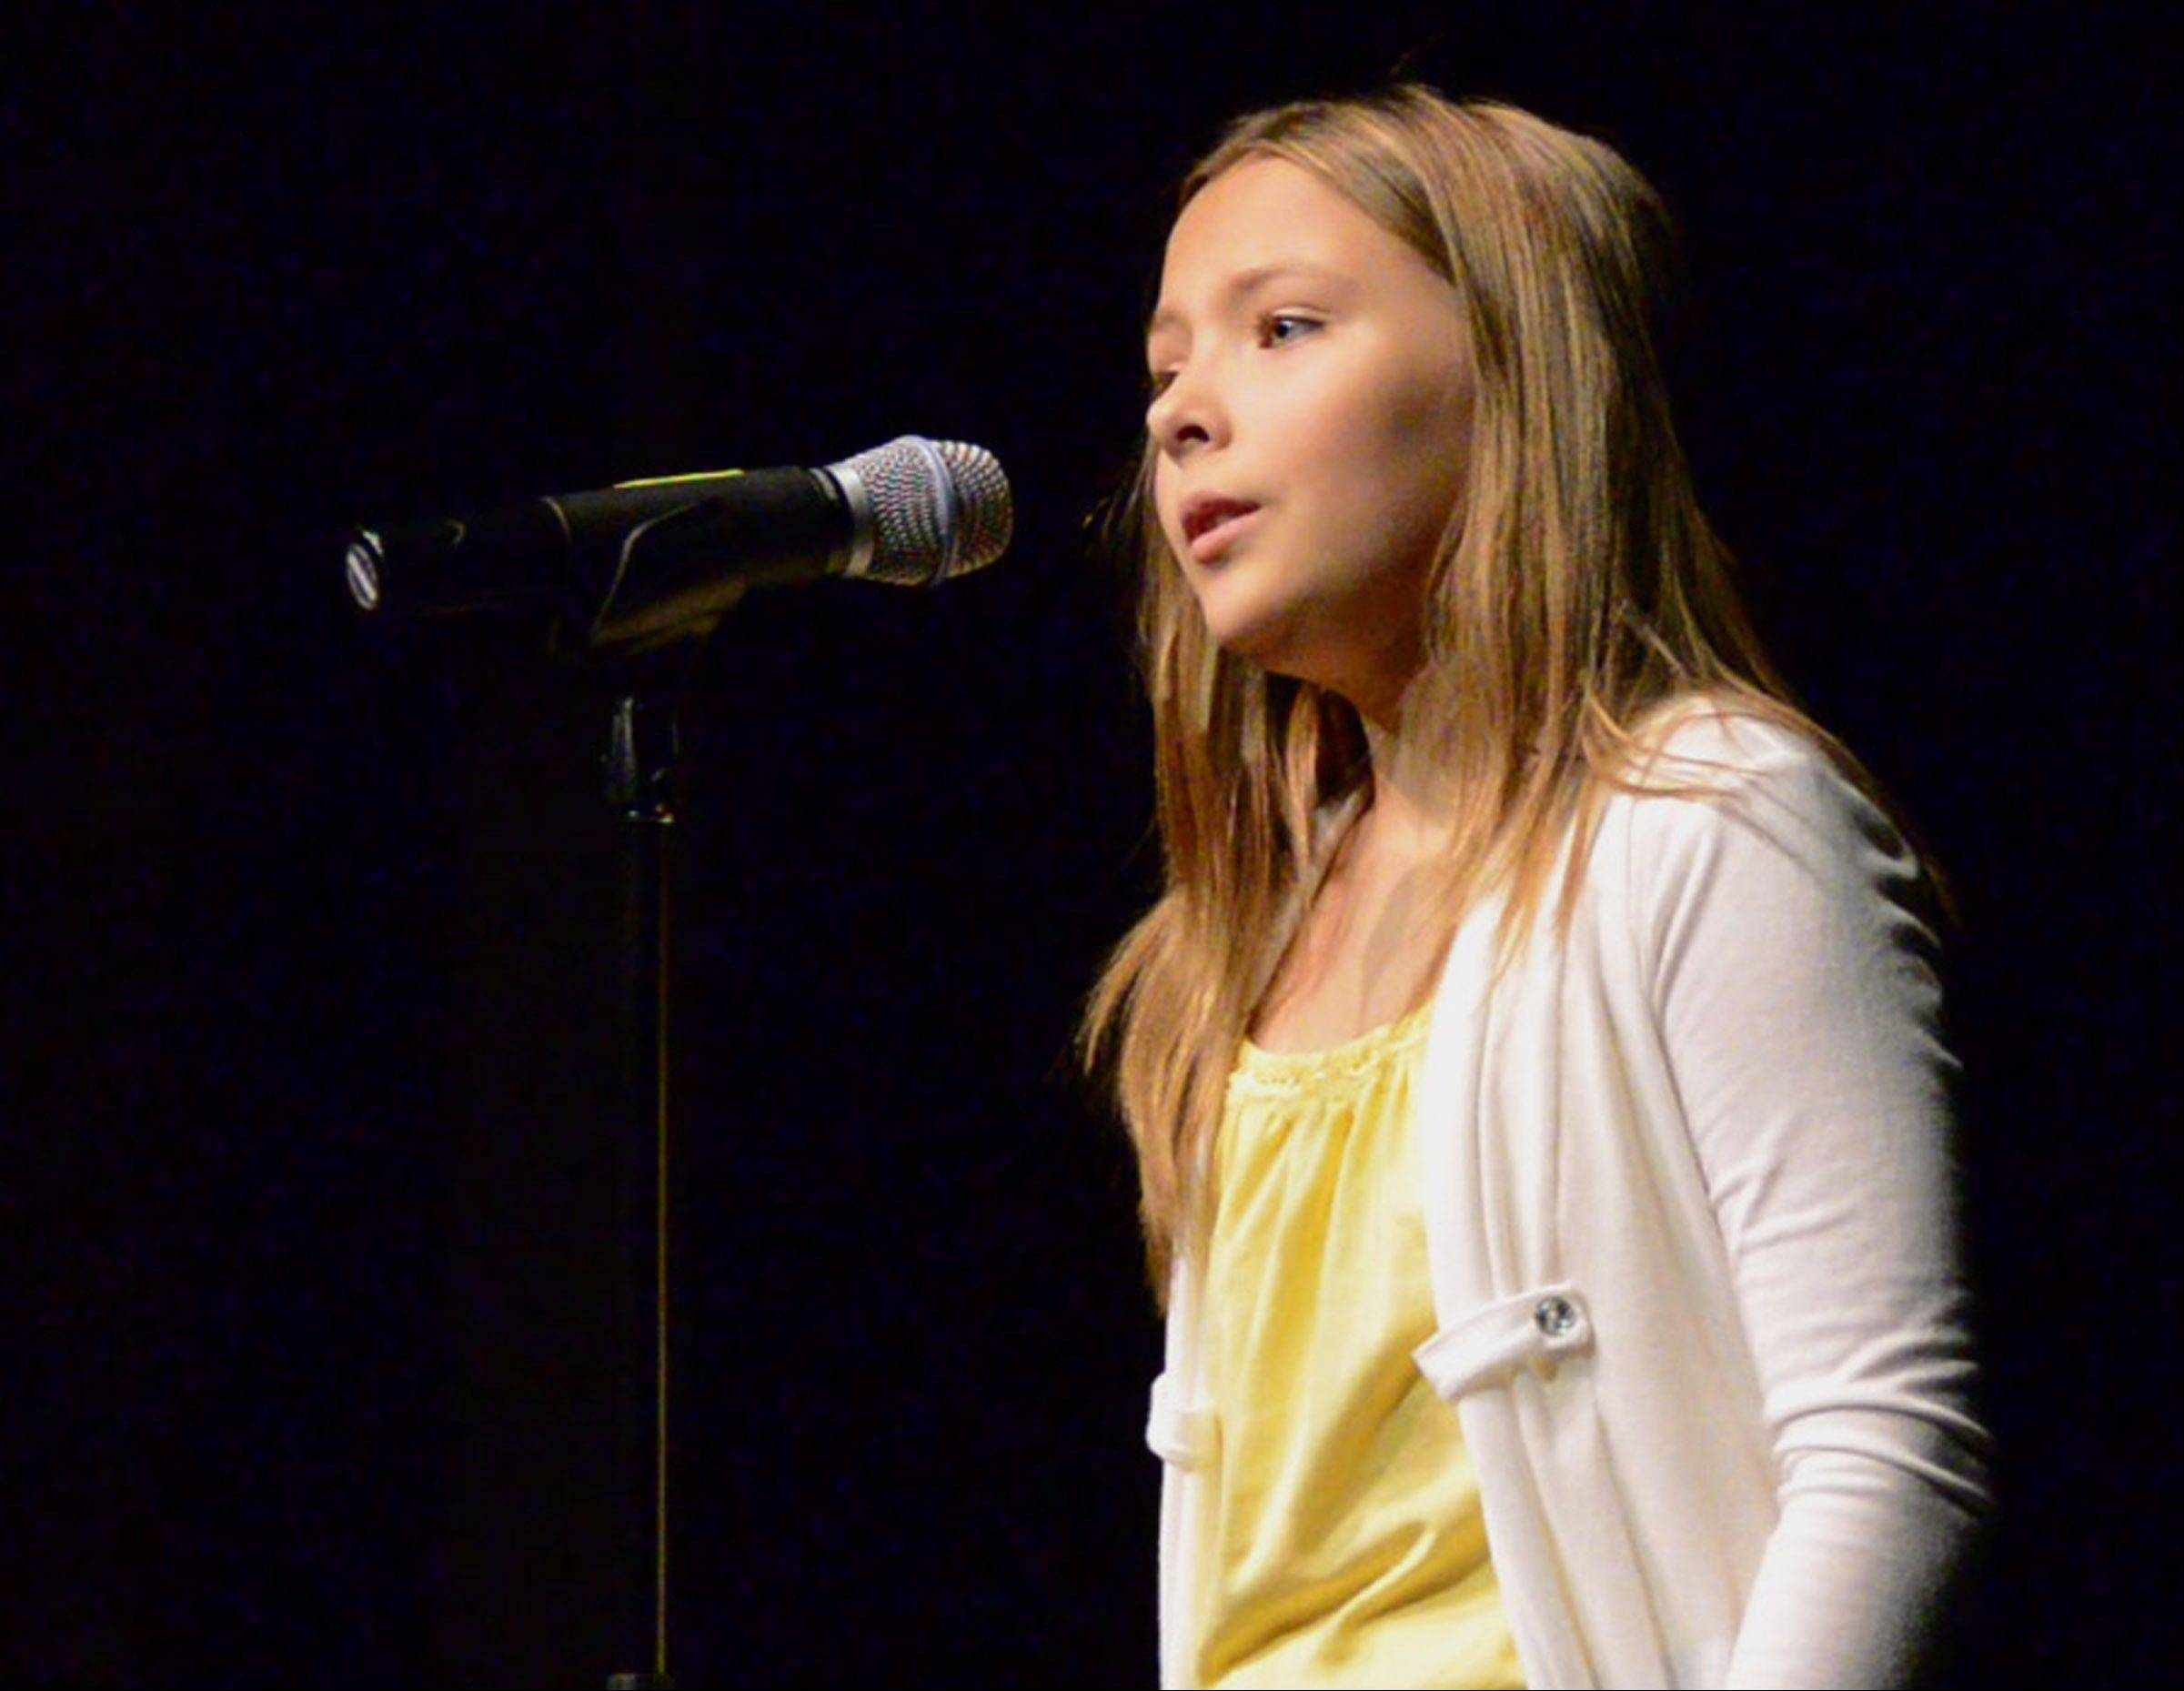 Agne Giedraityte, 10, of Downers Grove competes in Suburban Chicago's Got Talent auditions at the Metropolis Performing Arts Centre in Arlington Heights. Agne is one of 11 singers featured in the top 20 finalists for the competition.